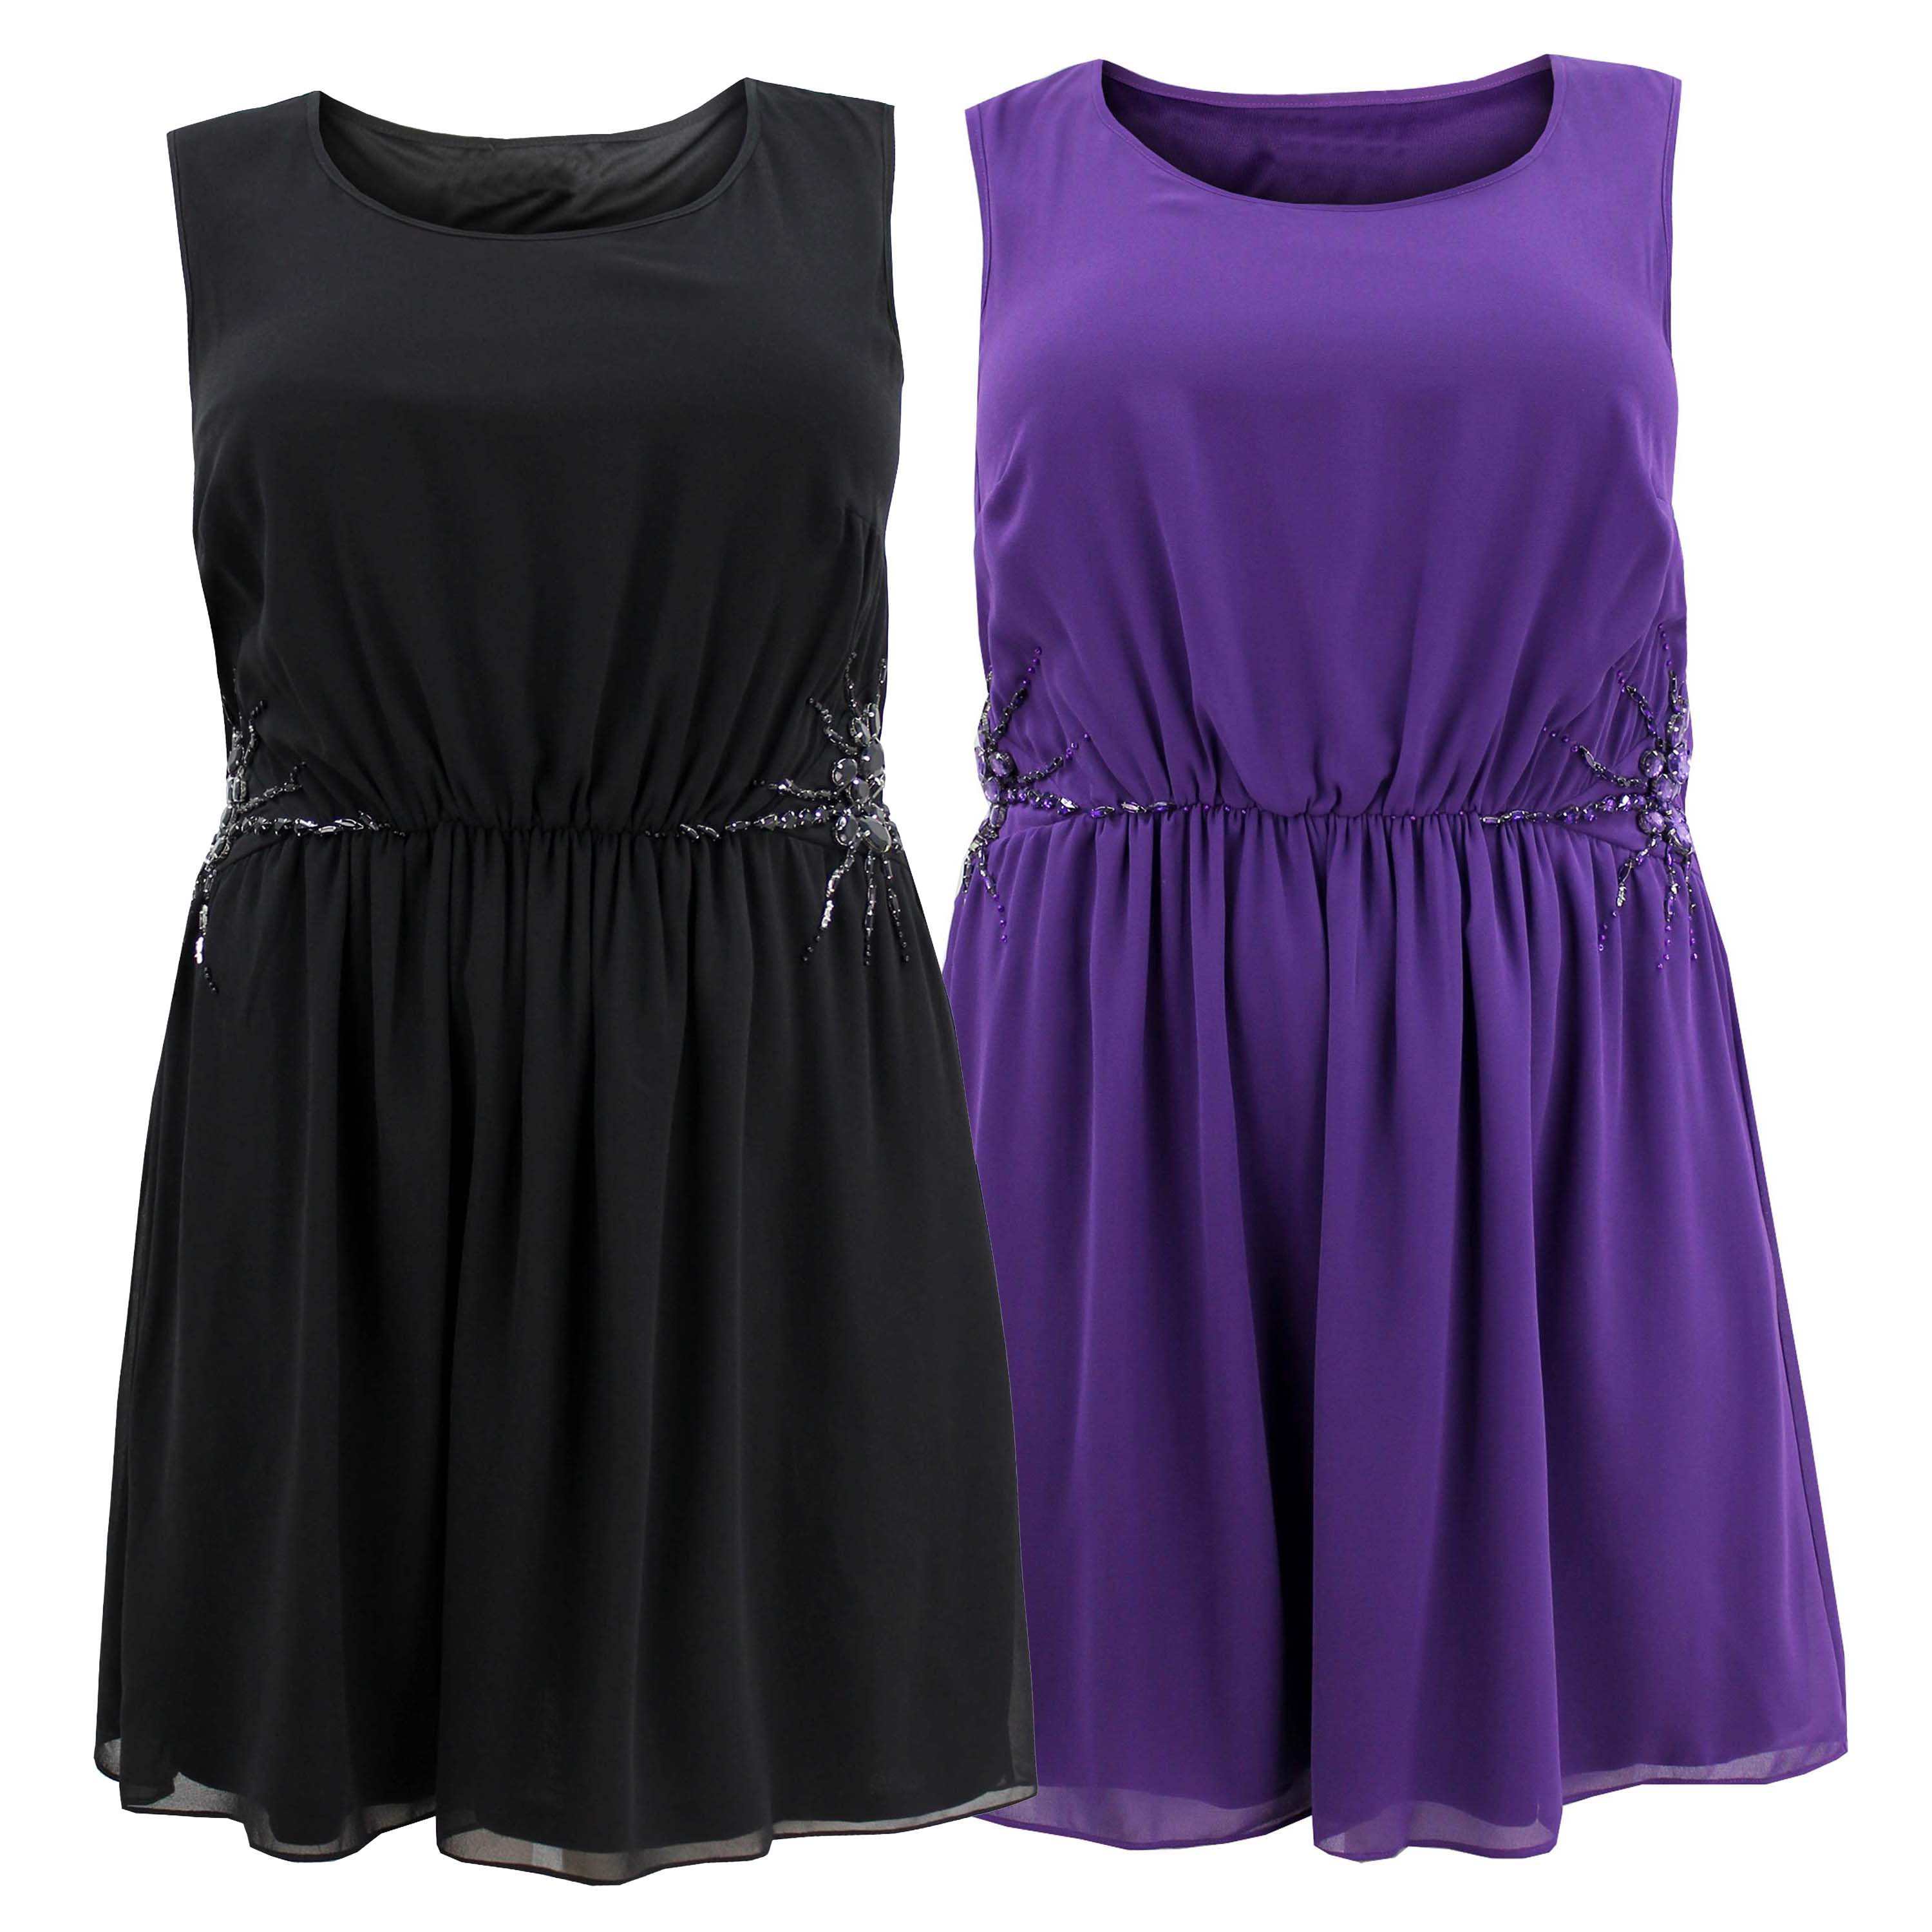 Ladies Womens Plus Size Sleeveless Jewel Trim Chiffon Skater Dress